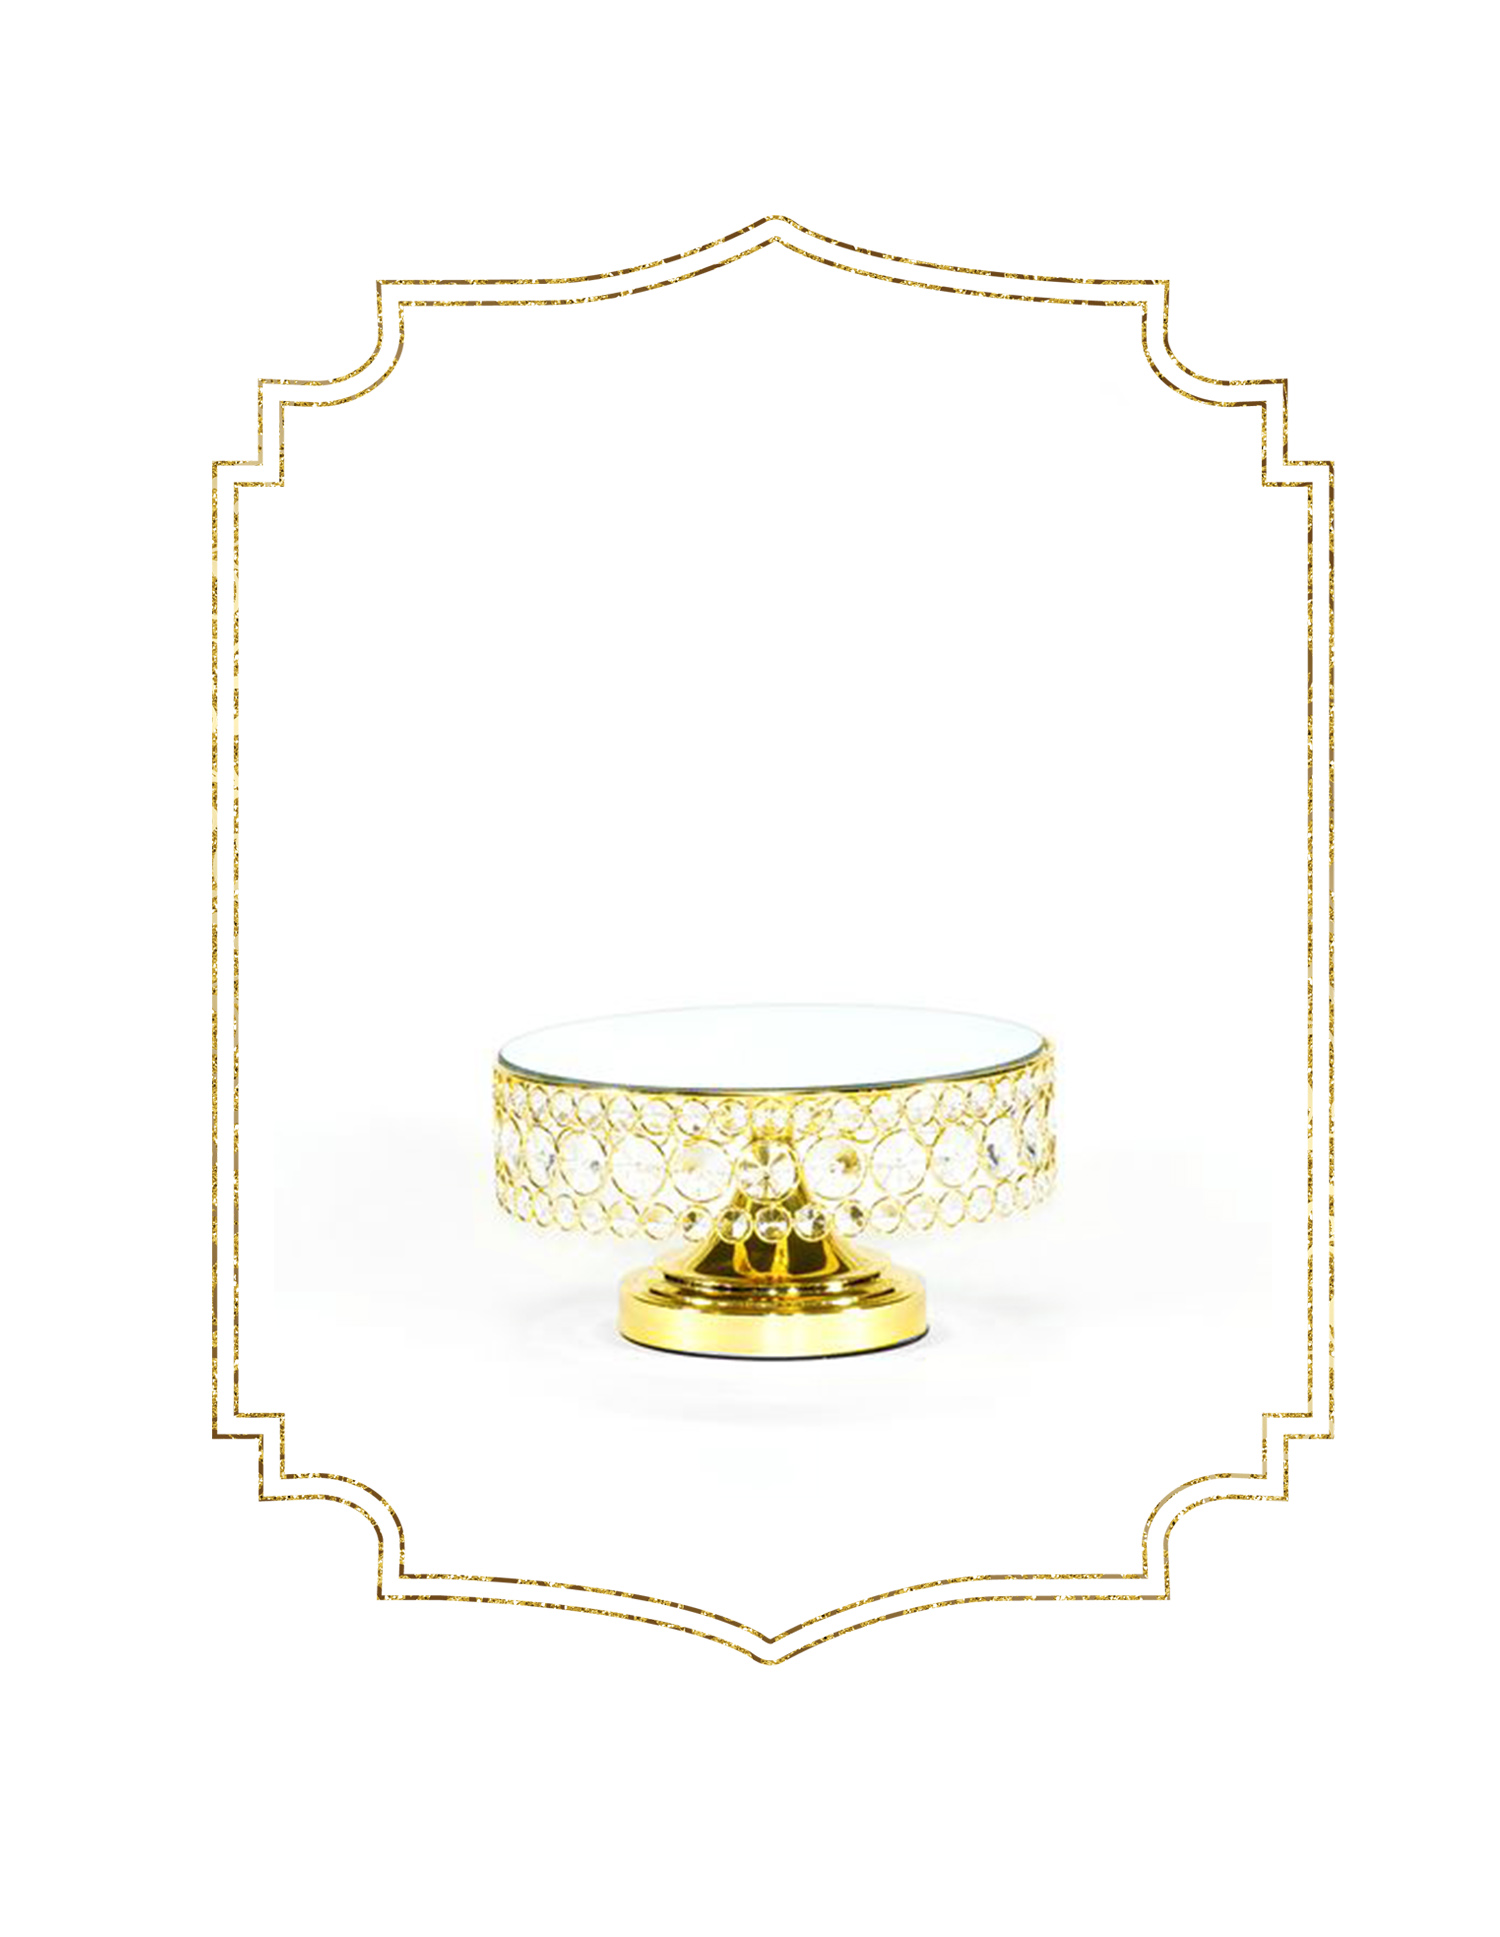 SHOP-preview SHINY GOLD MIRROR CAKE STAND.jpg